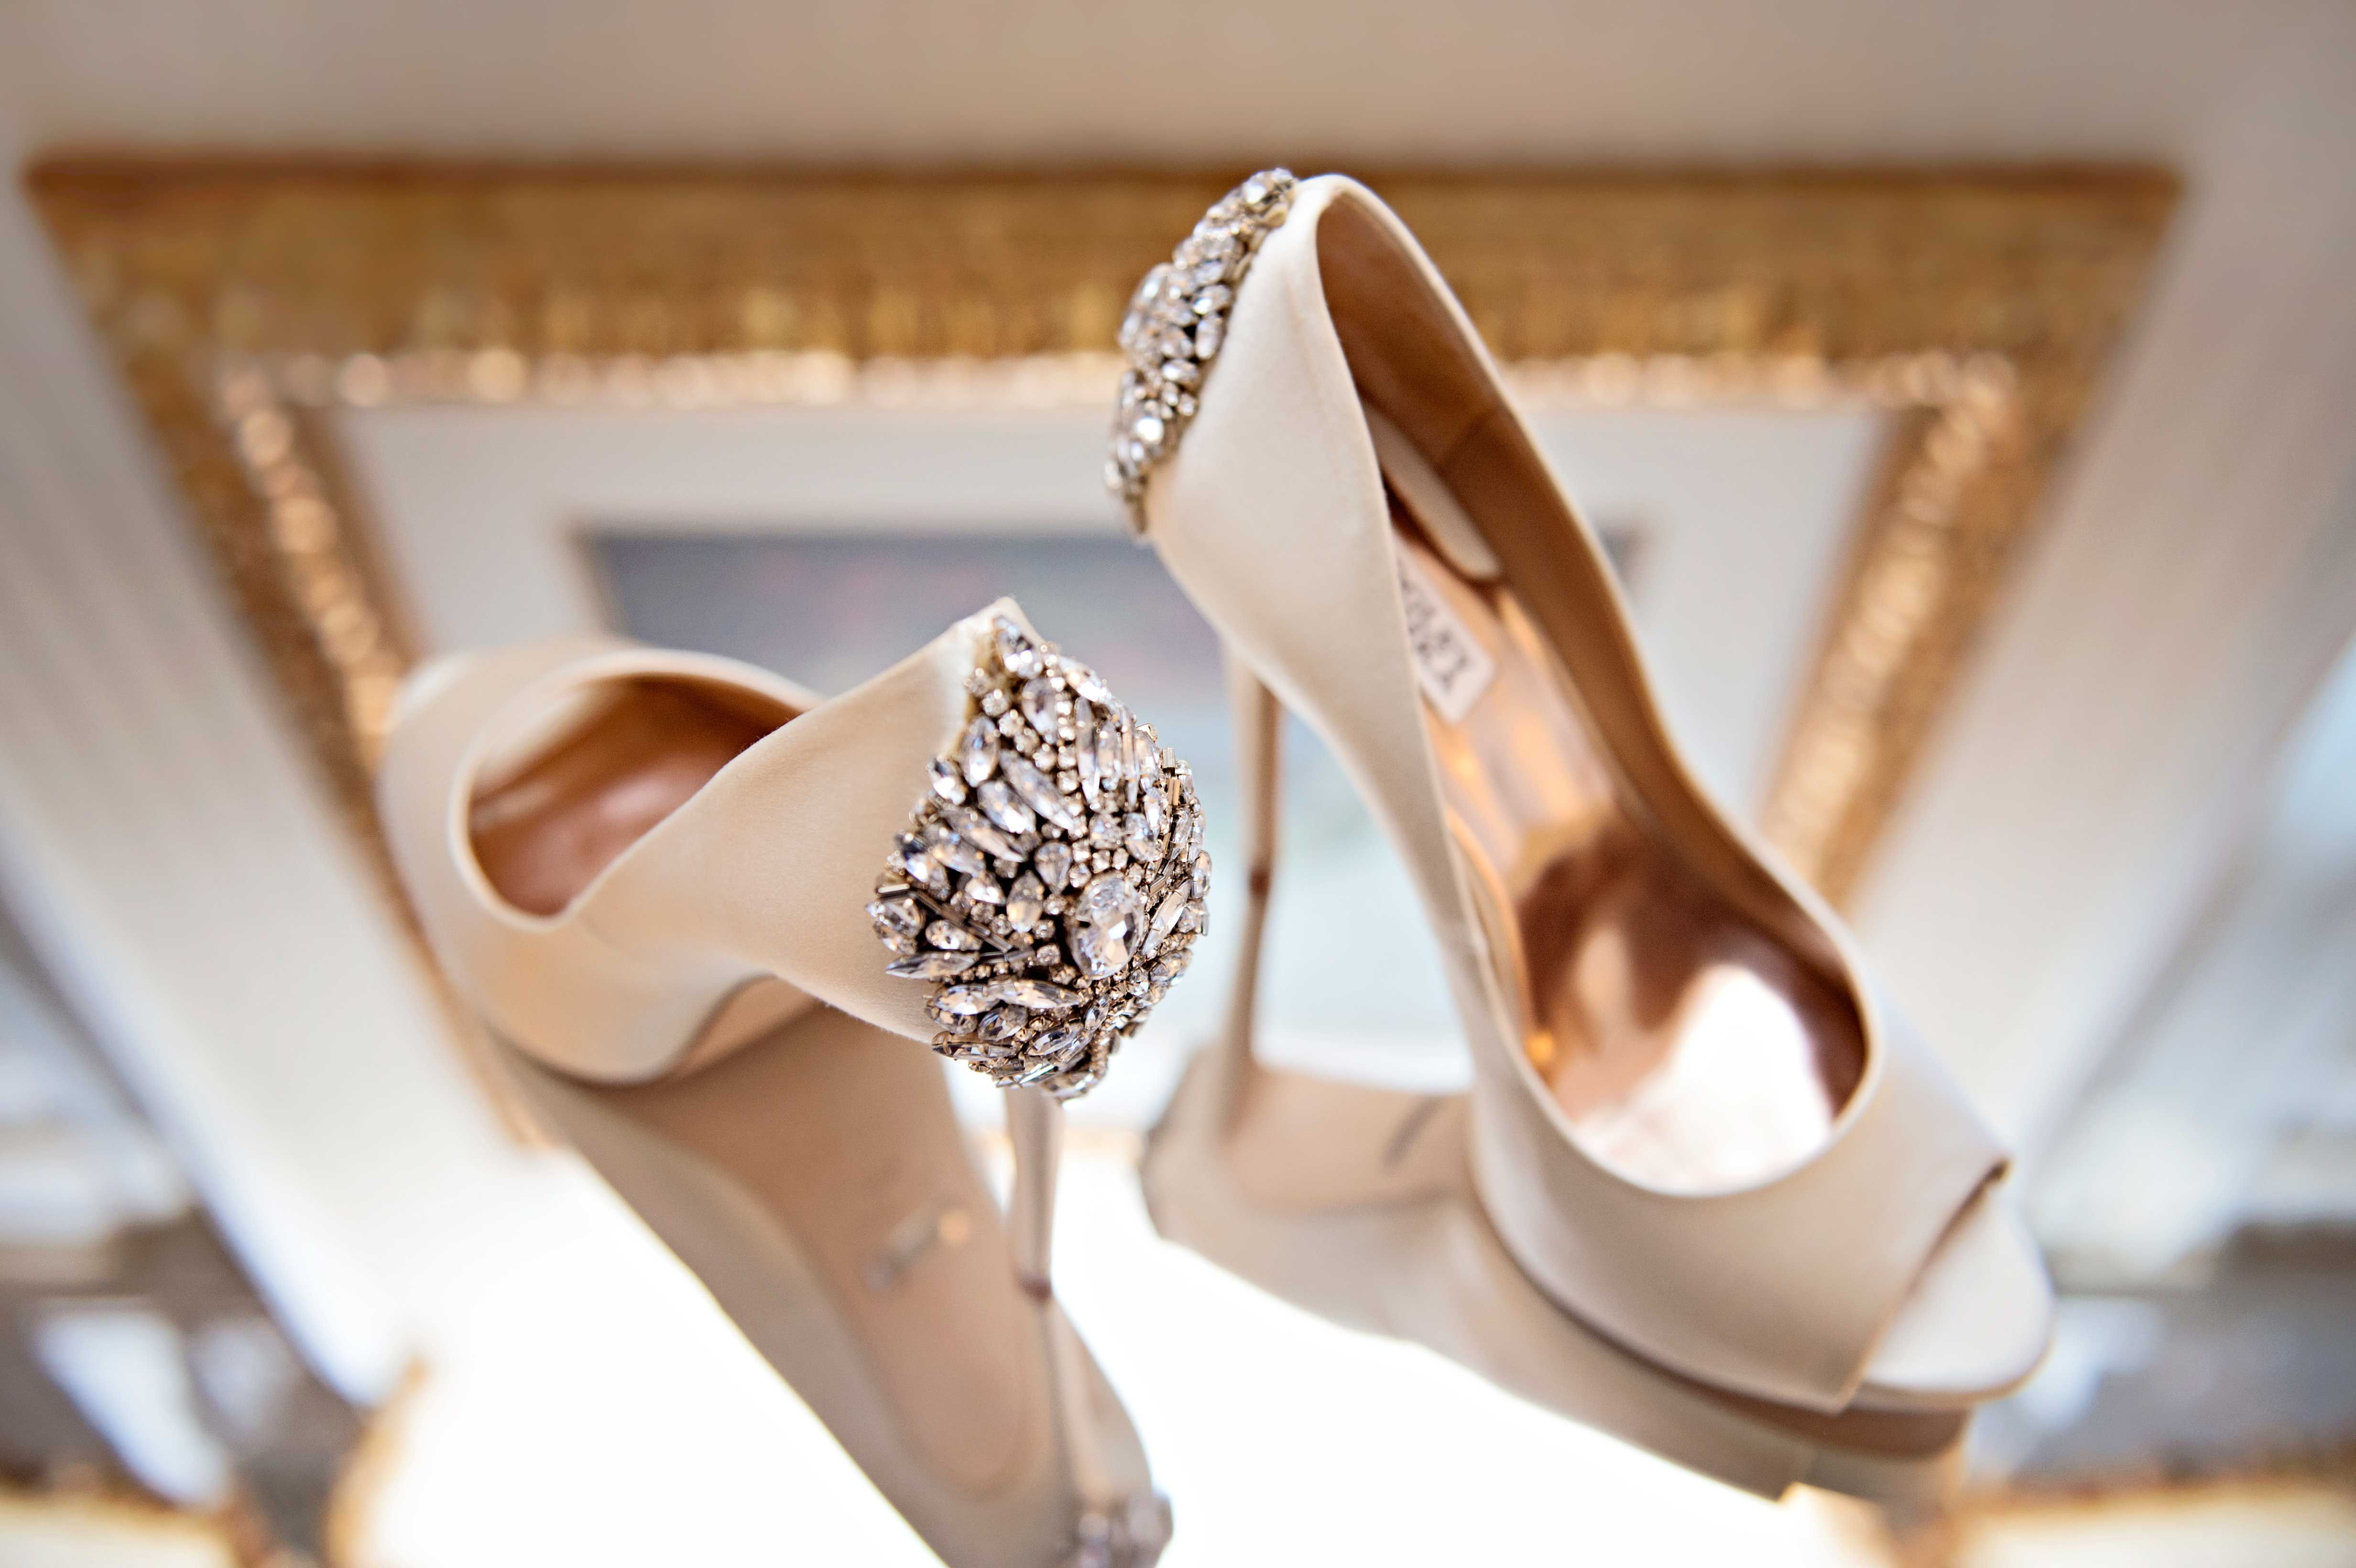 Wedding Shoes For Bride Bridesmaid Outfits Inside Weddings Champagne Wedding Shoes Wedding Shoes Photography Bridal Shoes